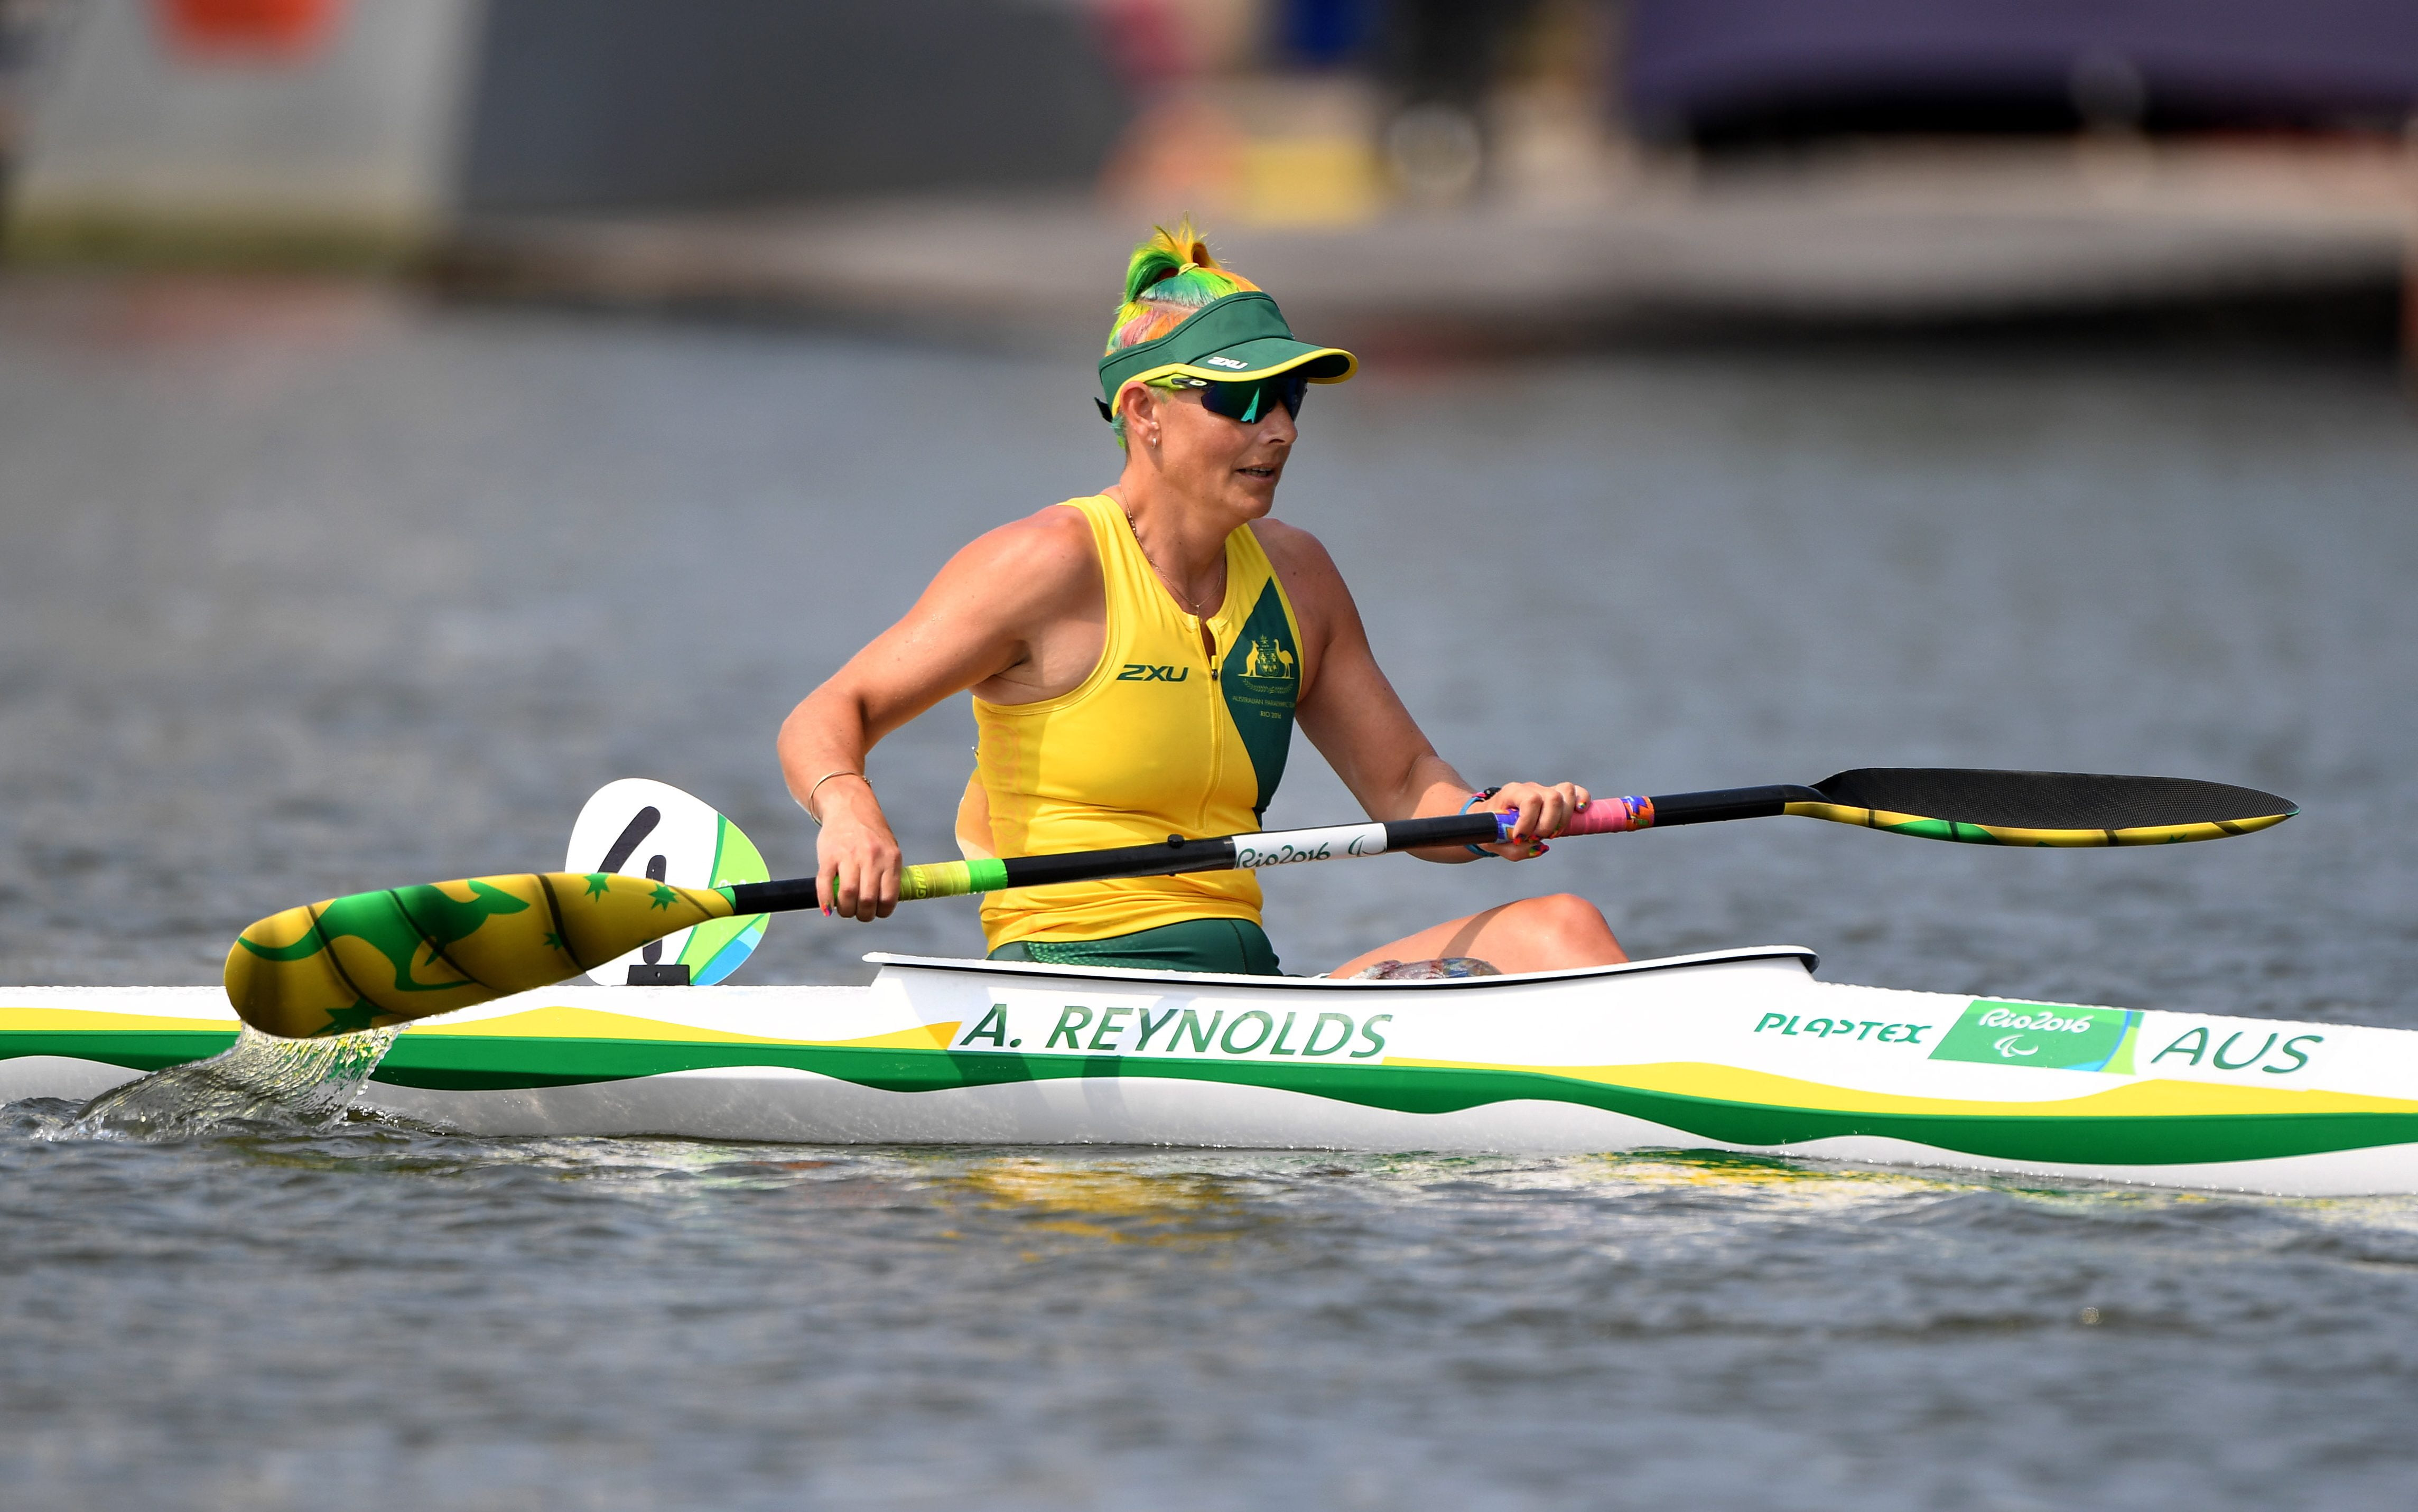 Paralympic medallists ready for 2018 Para-canoe World Championships with two years to go to Tokyo 2020